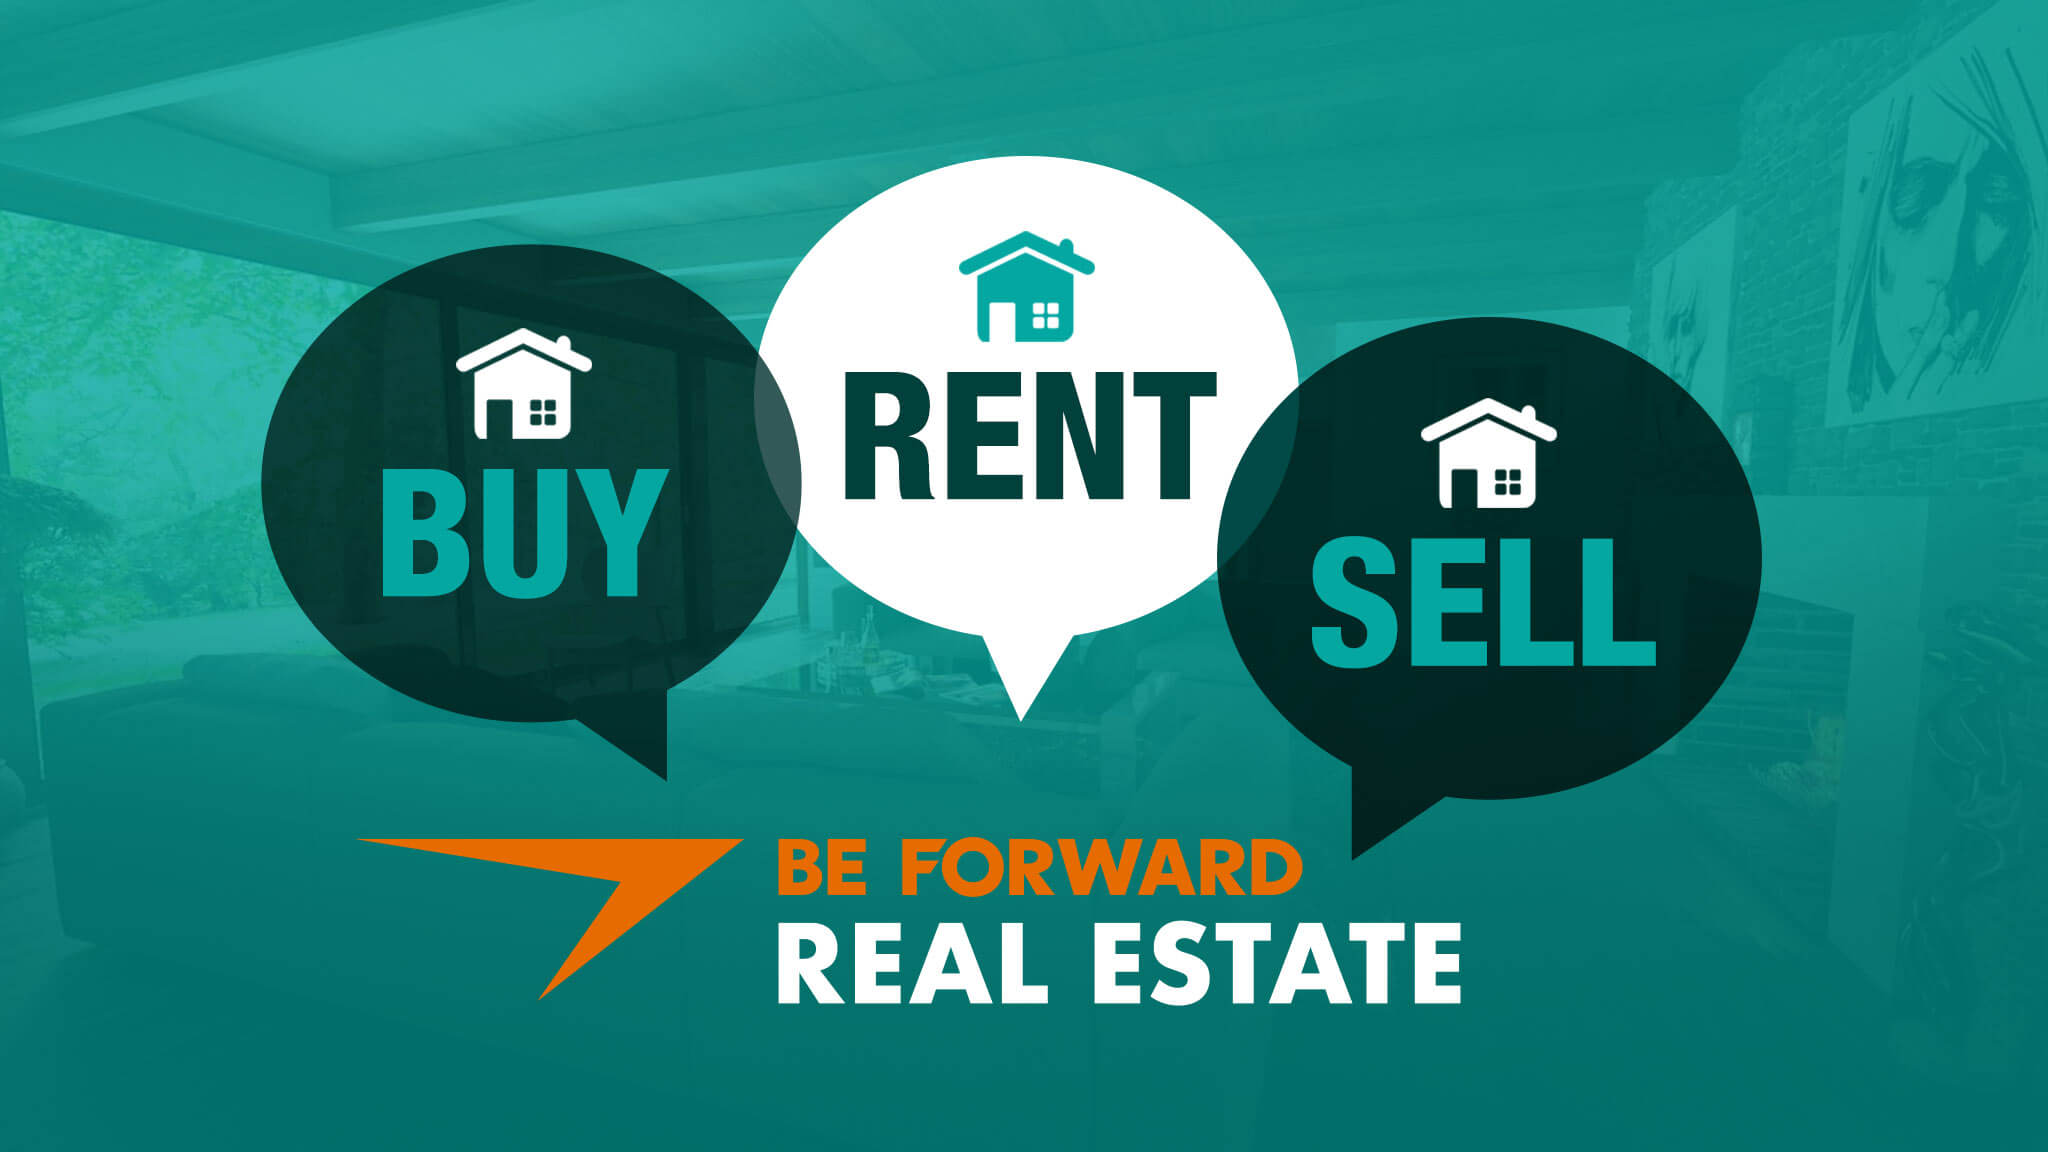 About Be Forward Real Estate Nigeria Properties In All Cities